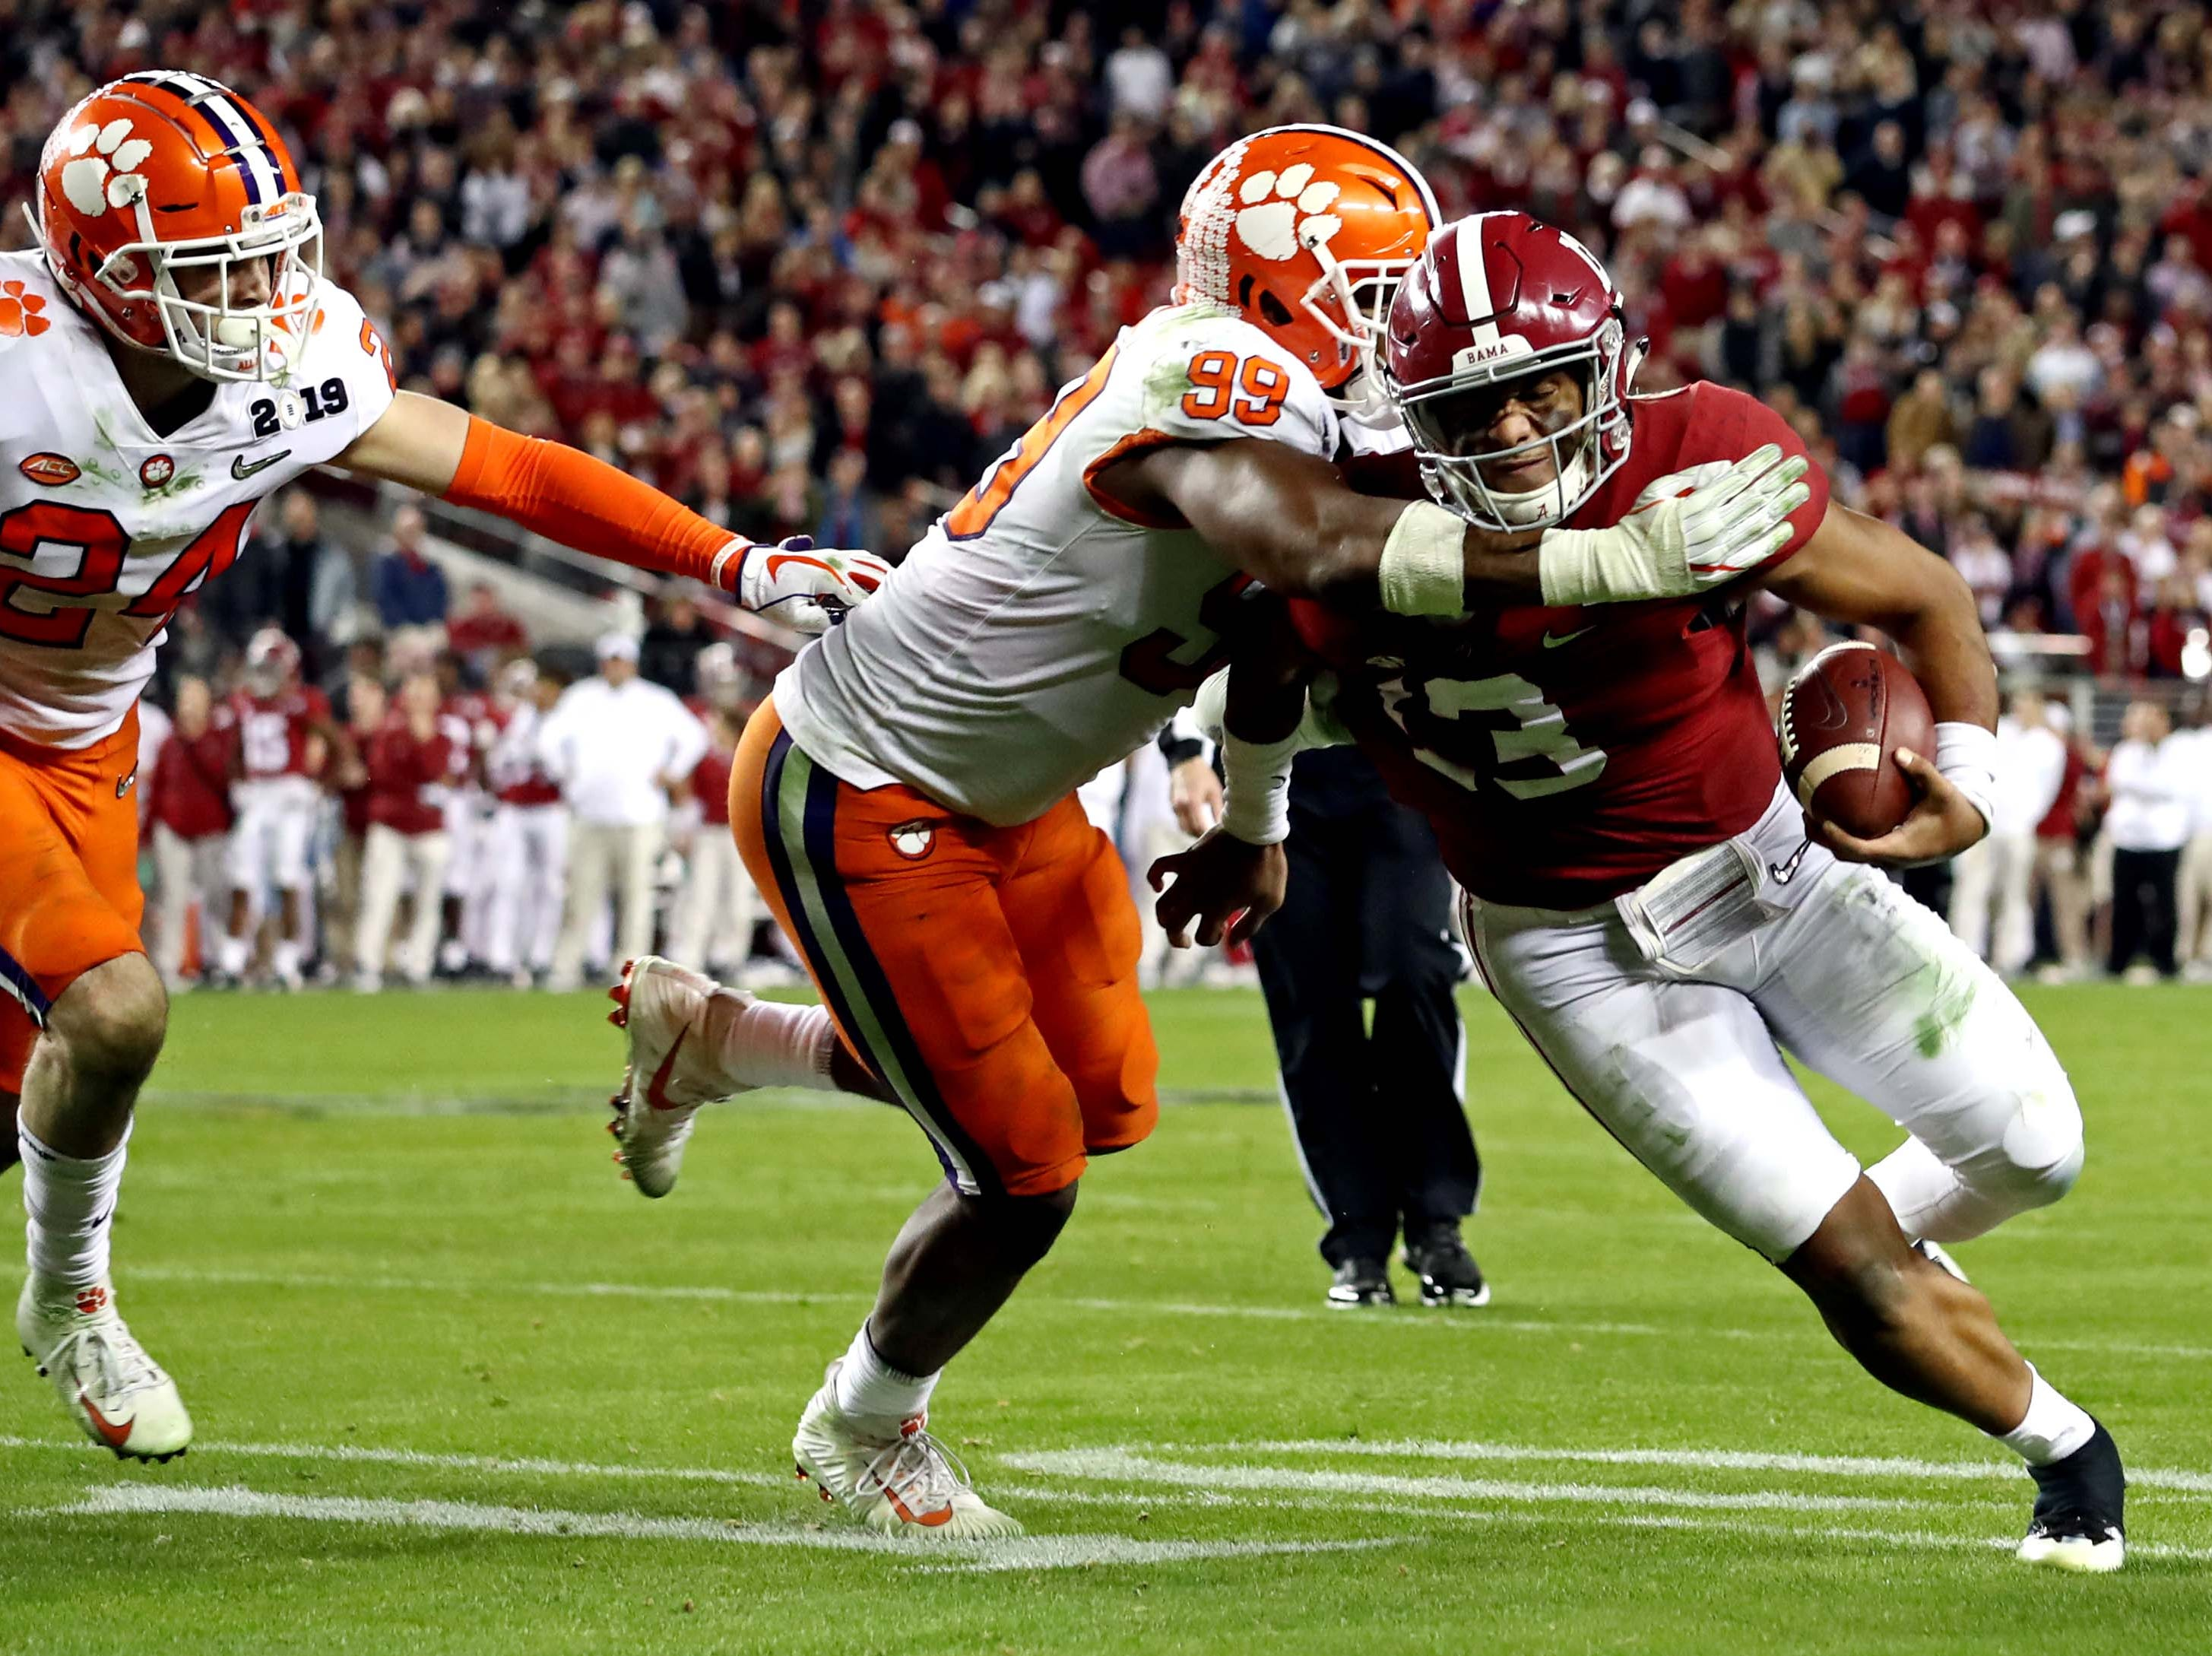 Jan 7, 2019; Santa Clara, CA, USA; Alabama Crimson Tide quarterback Tua Tagovailoa (13) runs the ball against Clemson Tigers defensive end Clelin Ferrell (99) during the fourth quarter during the 2019 College Football Playoff Championship game at Levi's Stadium. Mandatory Credit: Matthew Emmons-USA TODAY Sports